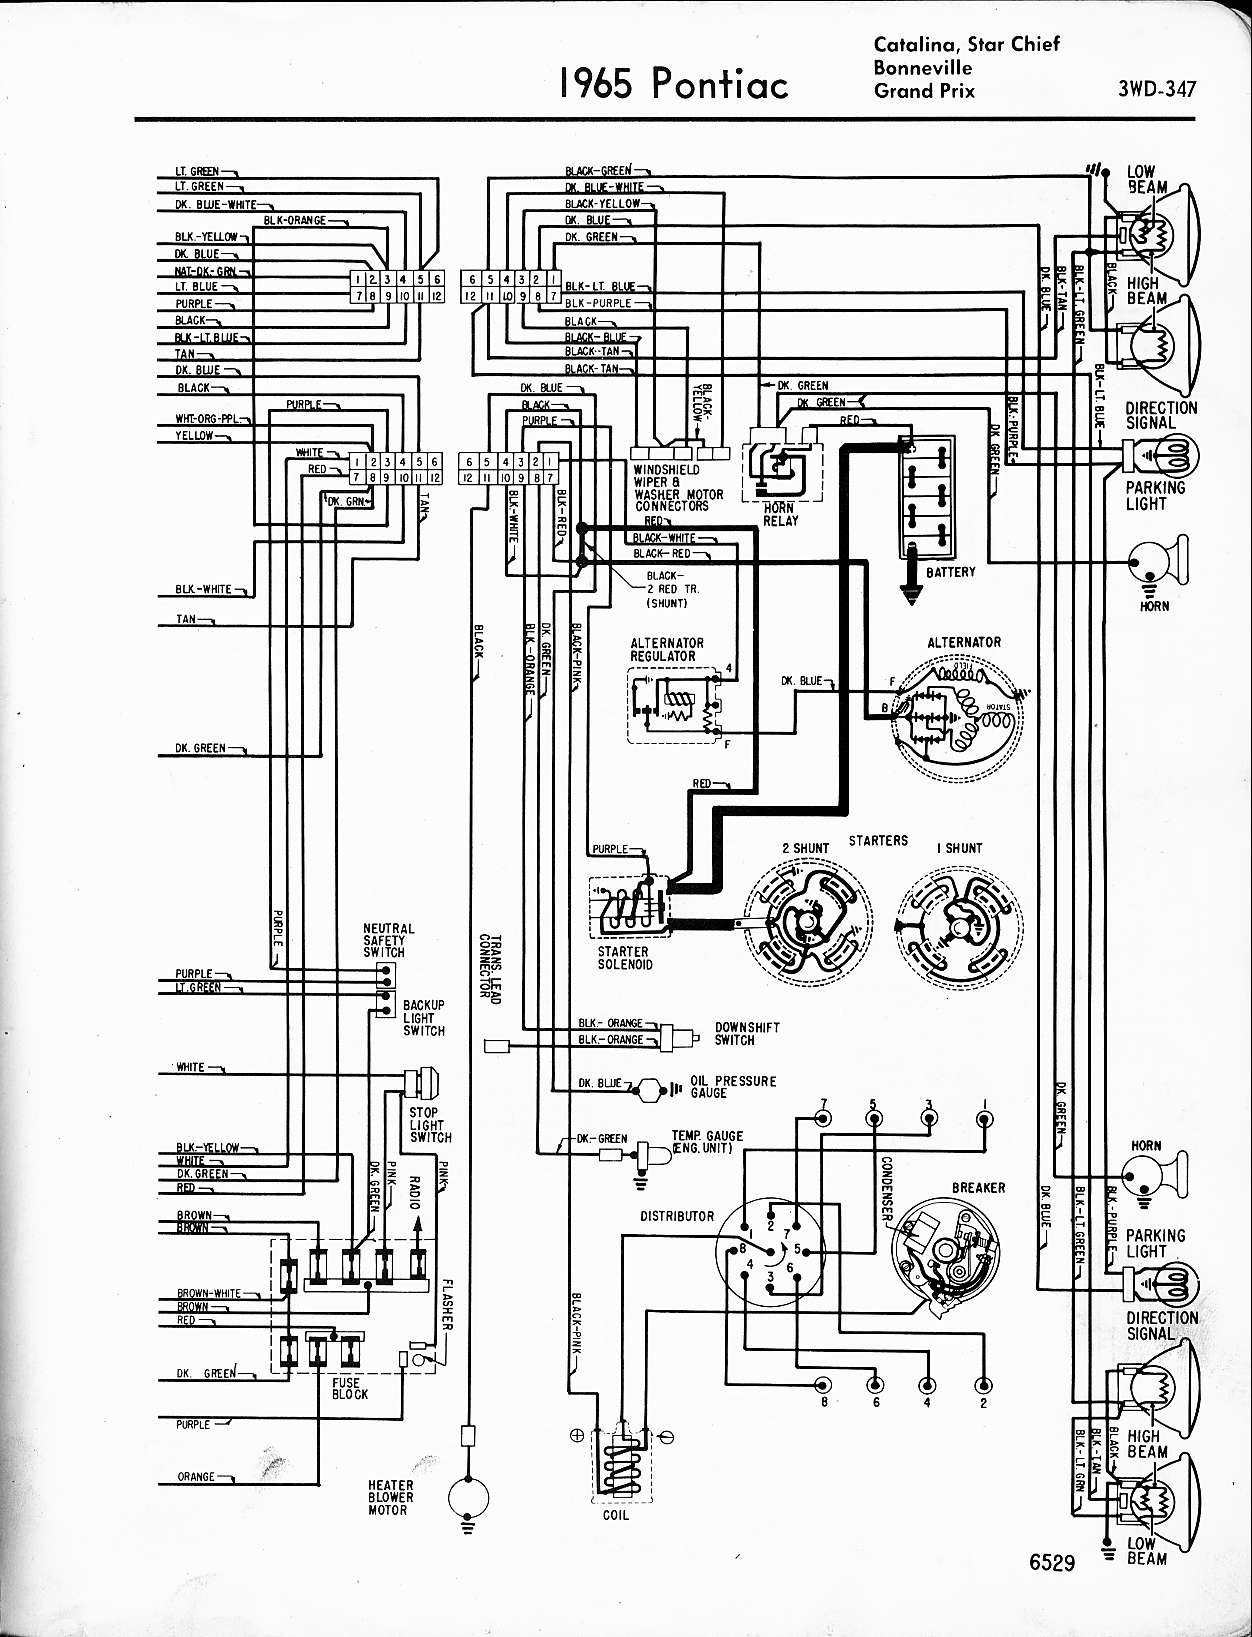 Pontiac Wiring Diagram Automotive 2008 Grand Prix Wallace Racing Diagrams Rh Wallaceracing Com Vibe